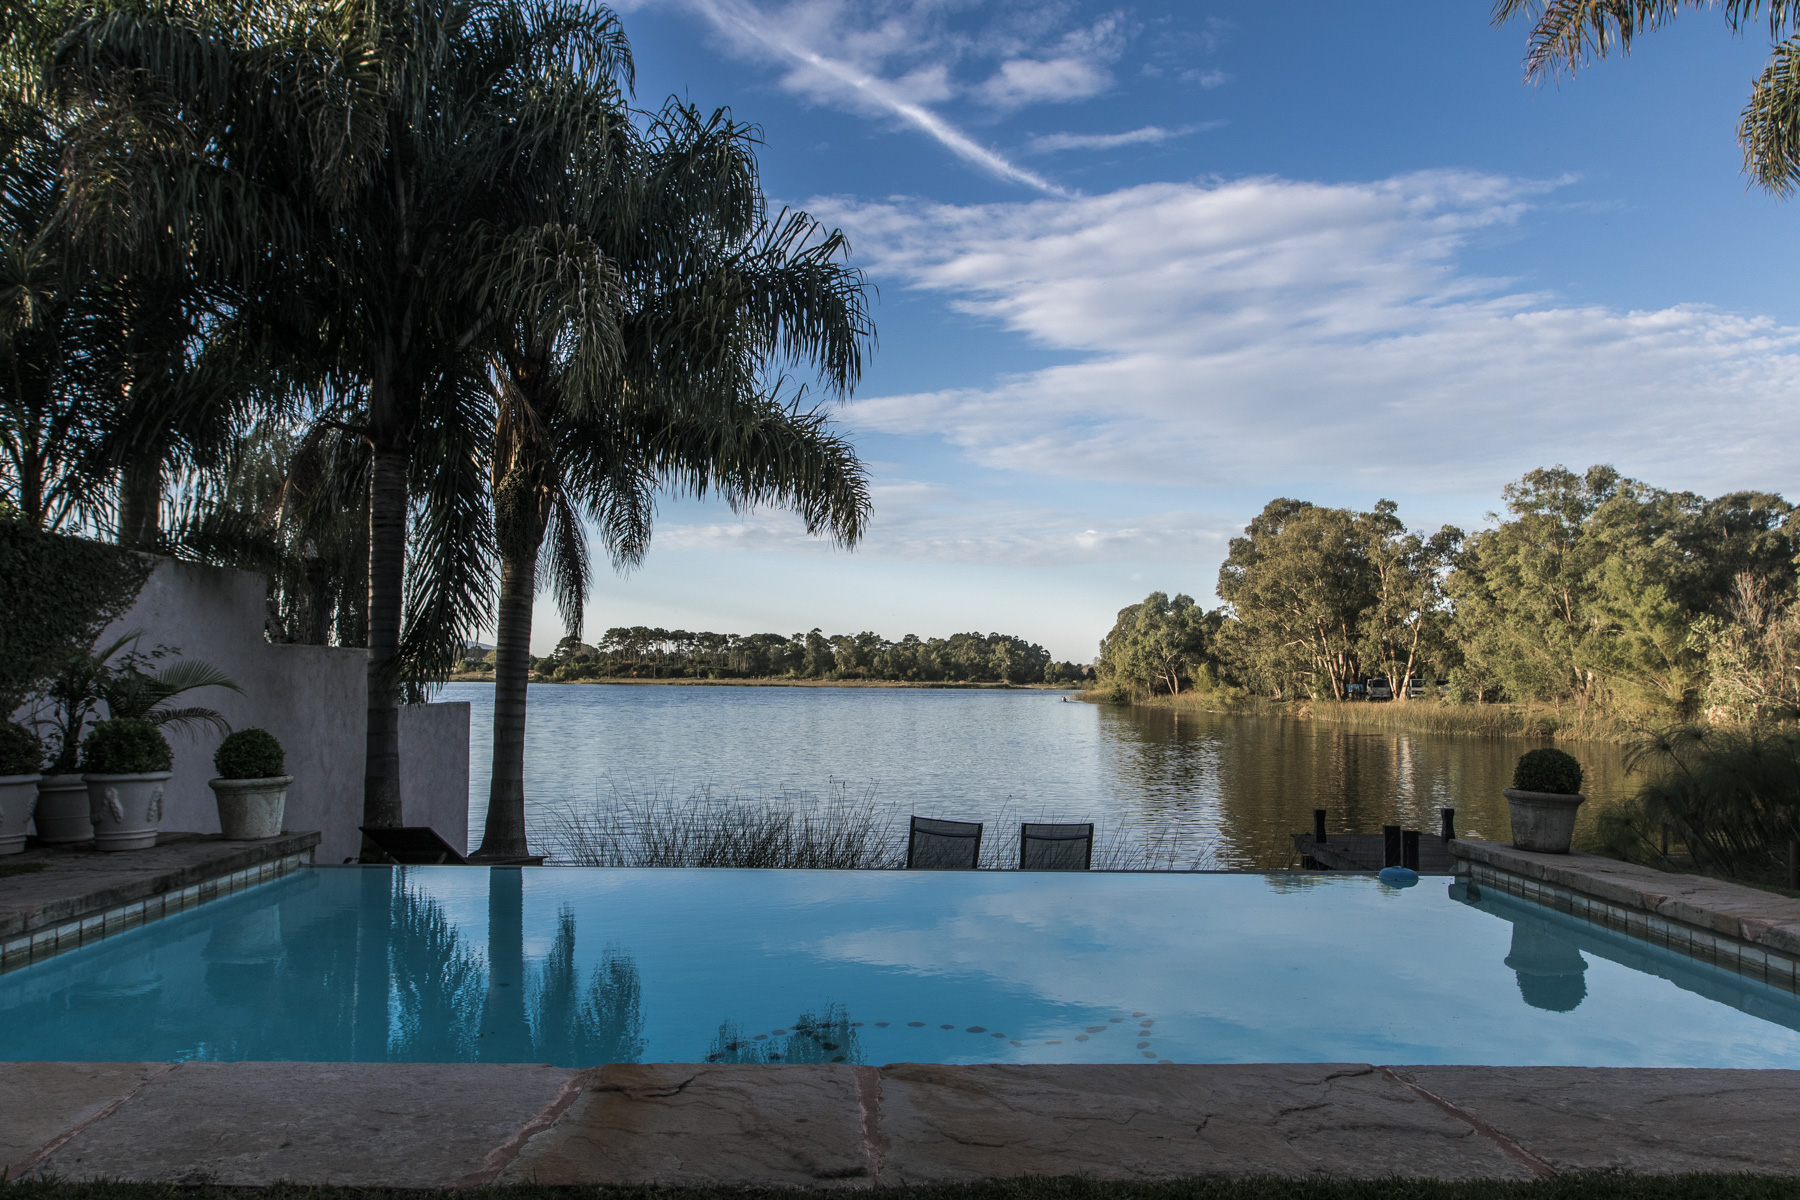 Single Family Home for Sale at Tuscan home on the lake Montevideo, Montevideo, Uruguay